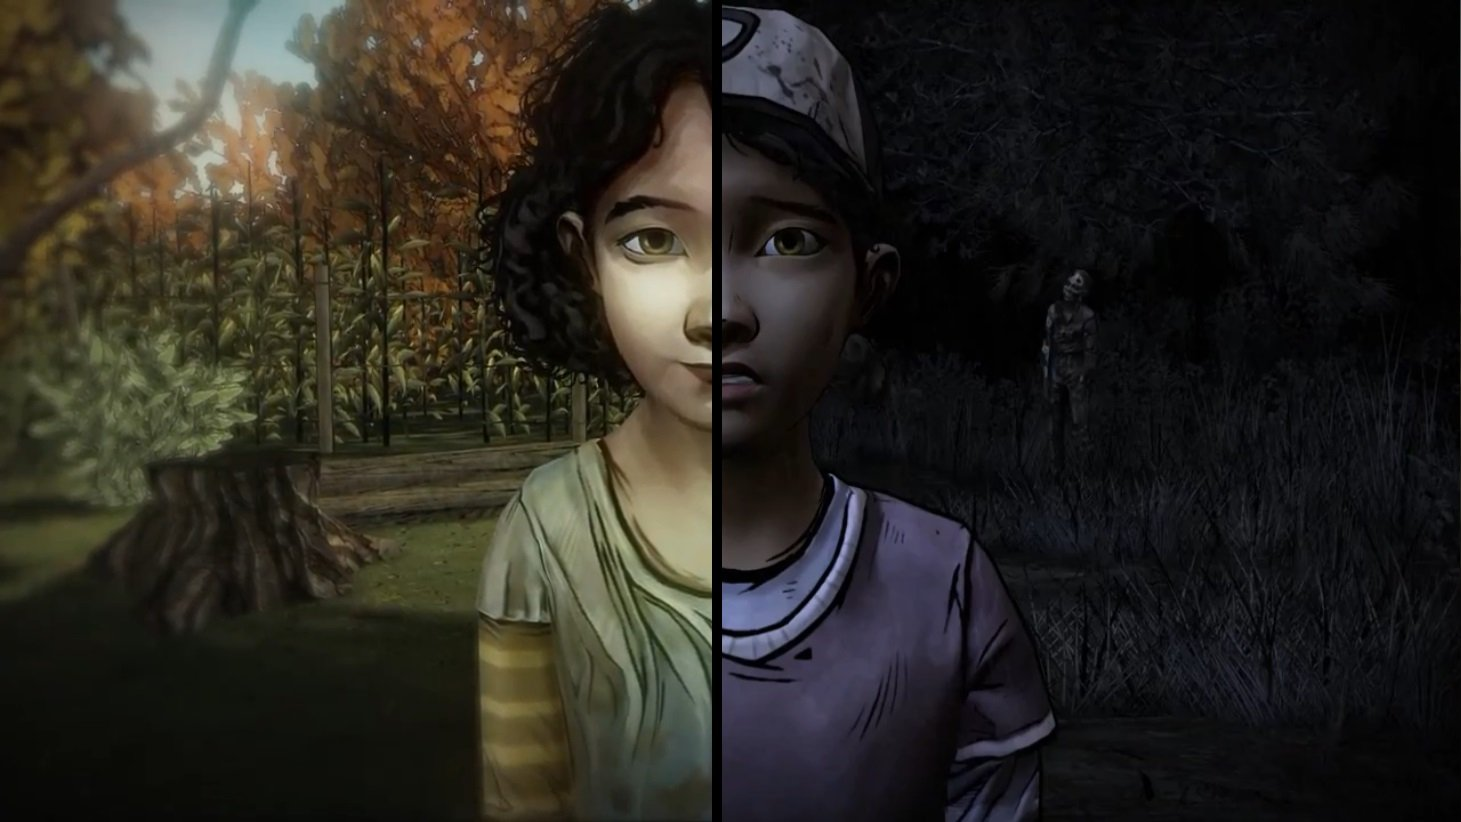 Clementine's voice actress gives some heartfelt words about Telltale's closure screenshot